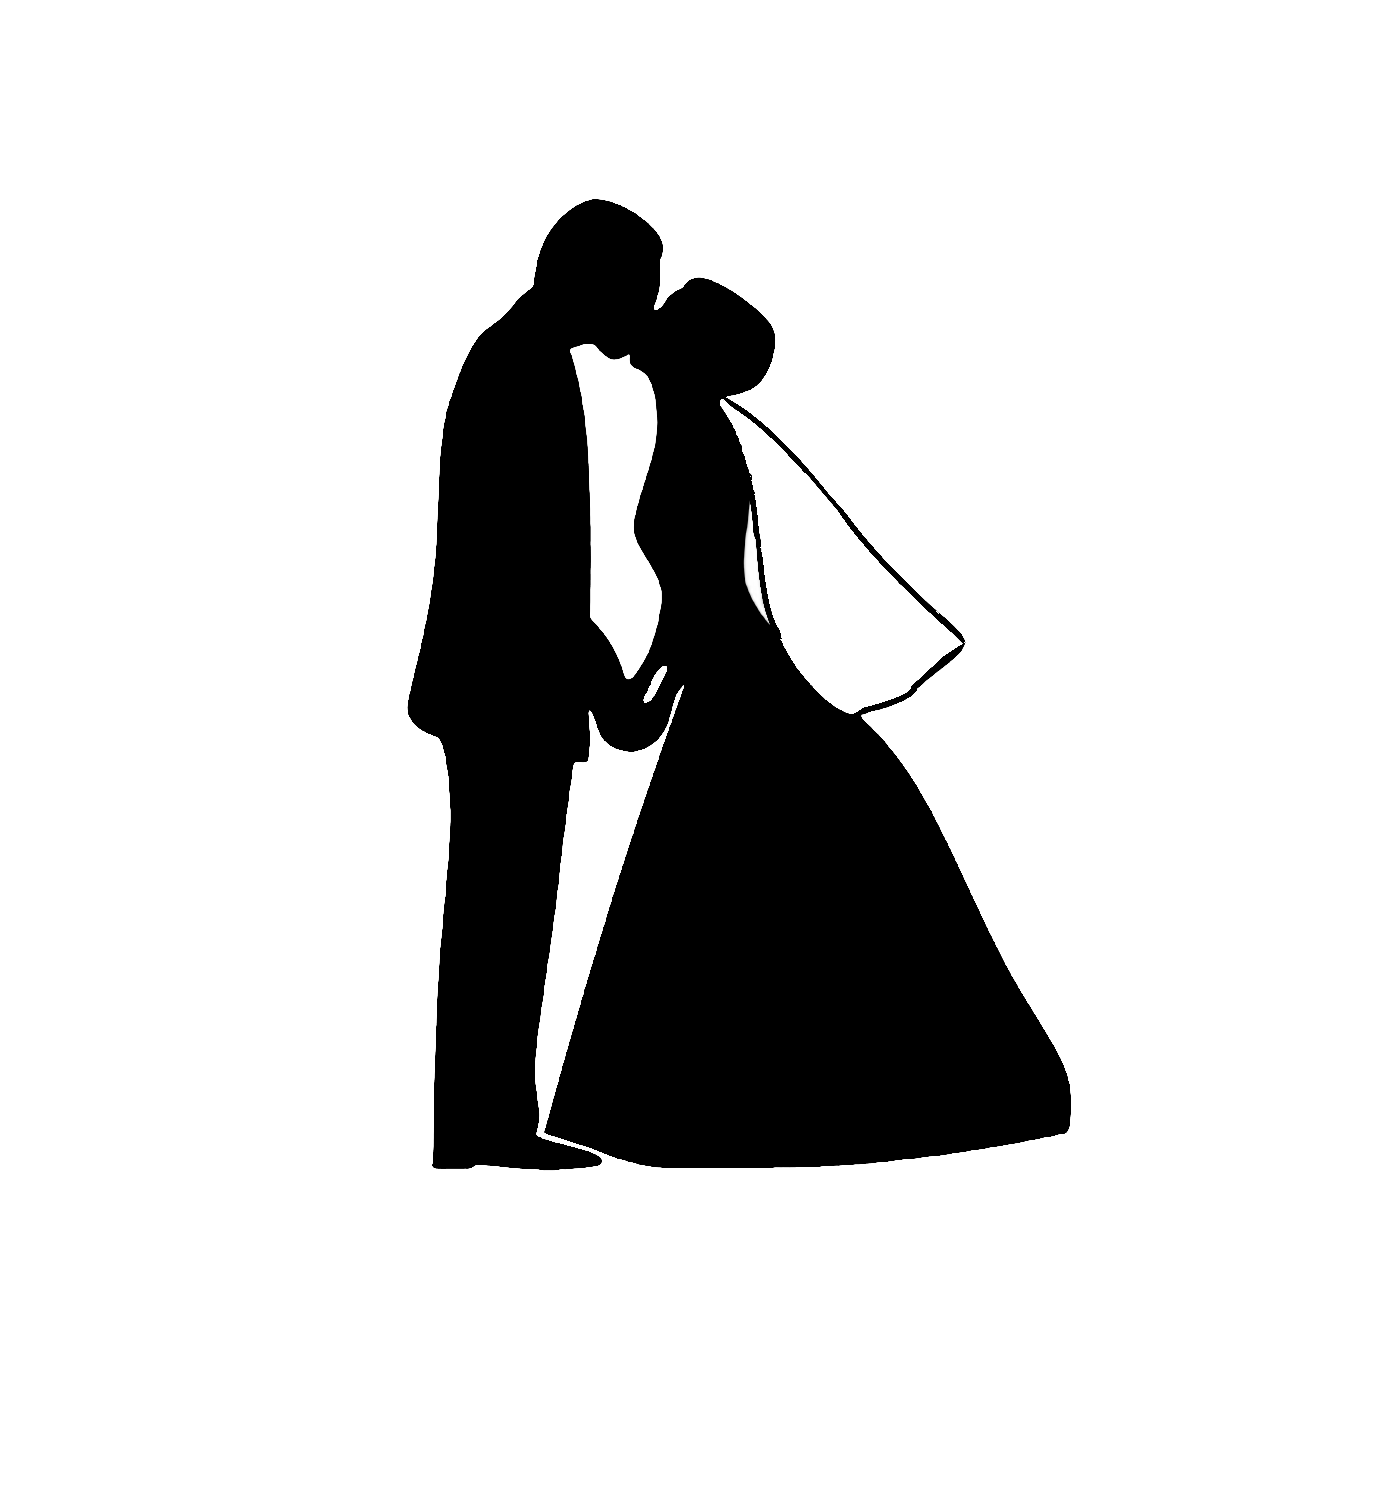 Two people kissing clipart wedding clip art transparent download Two people kissing clipart wedding - ClipartFest clip art transparent download